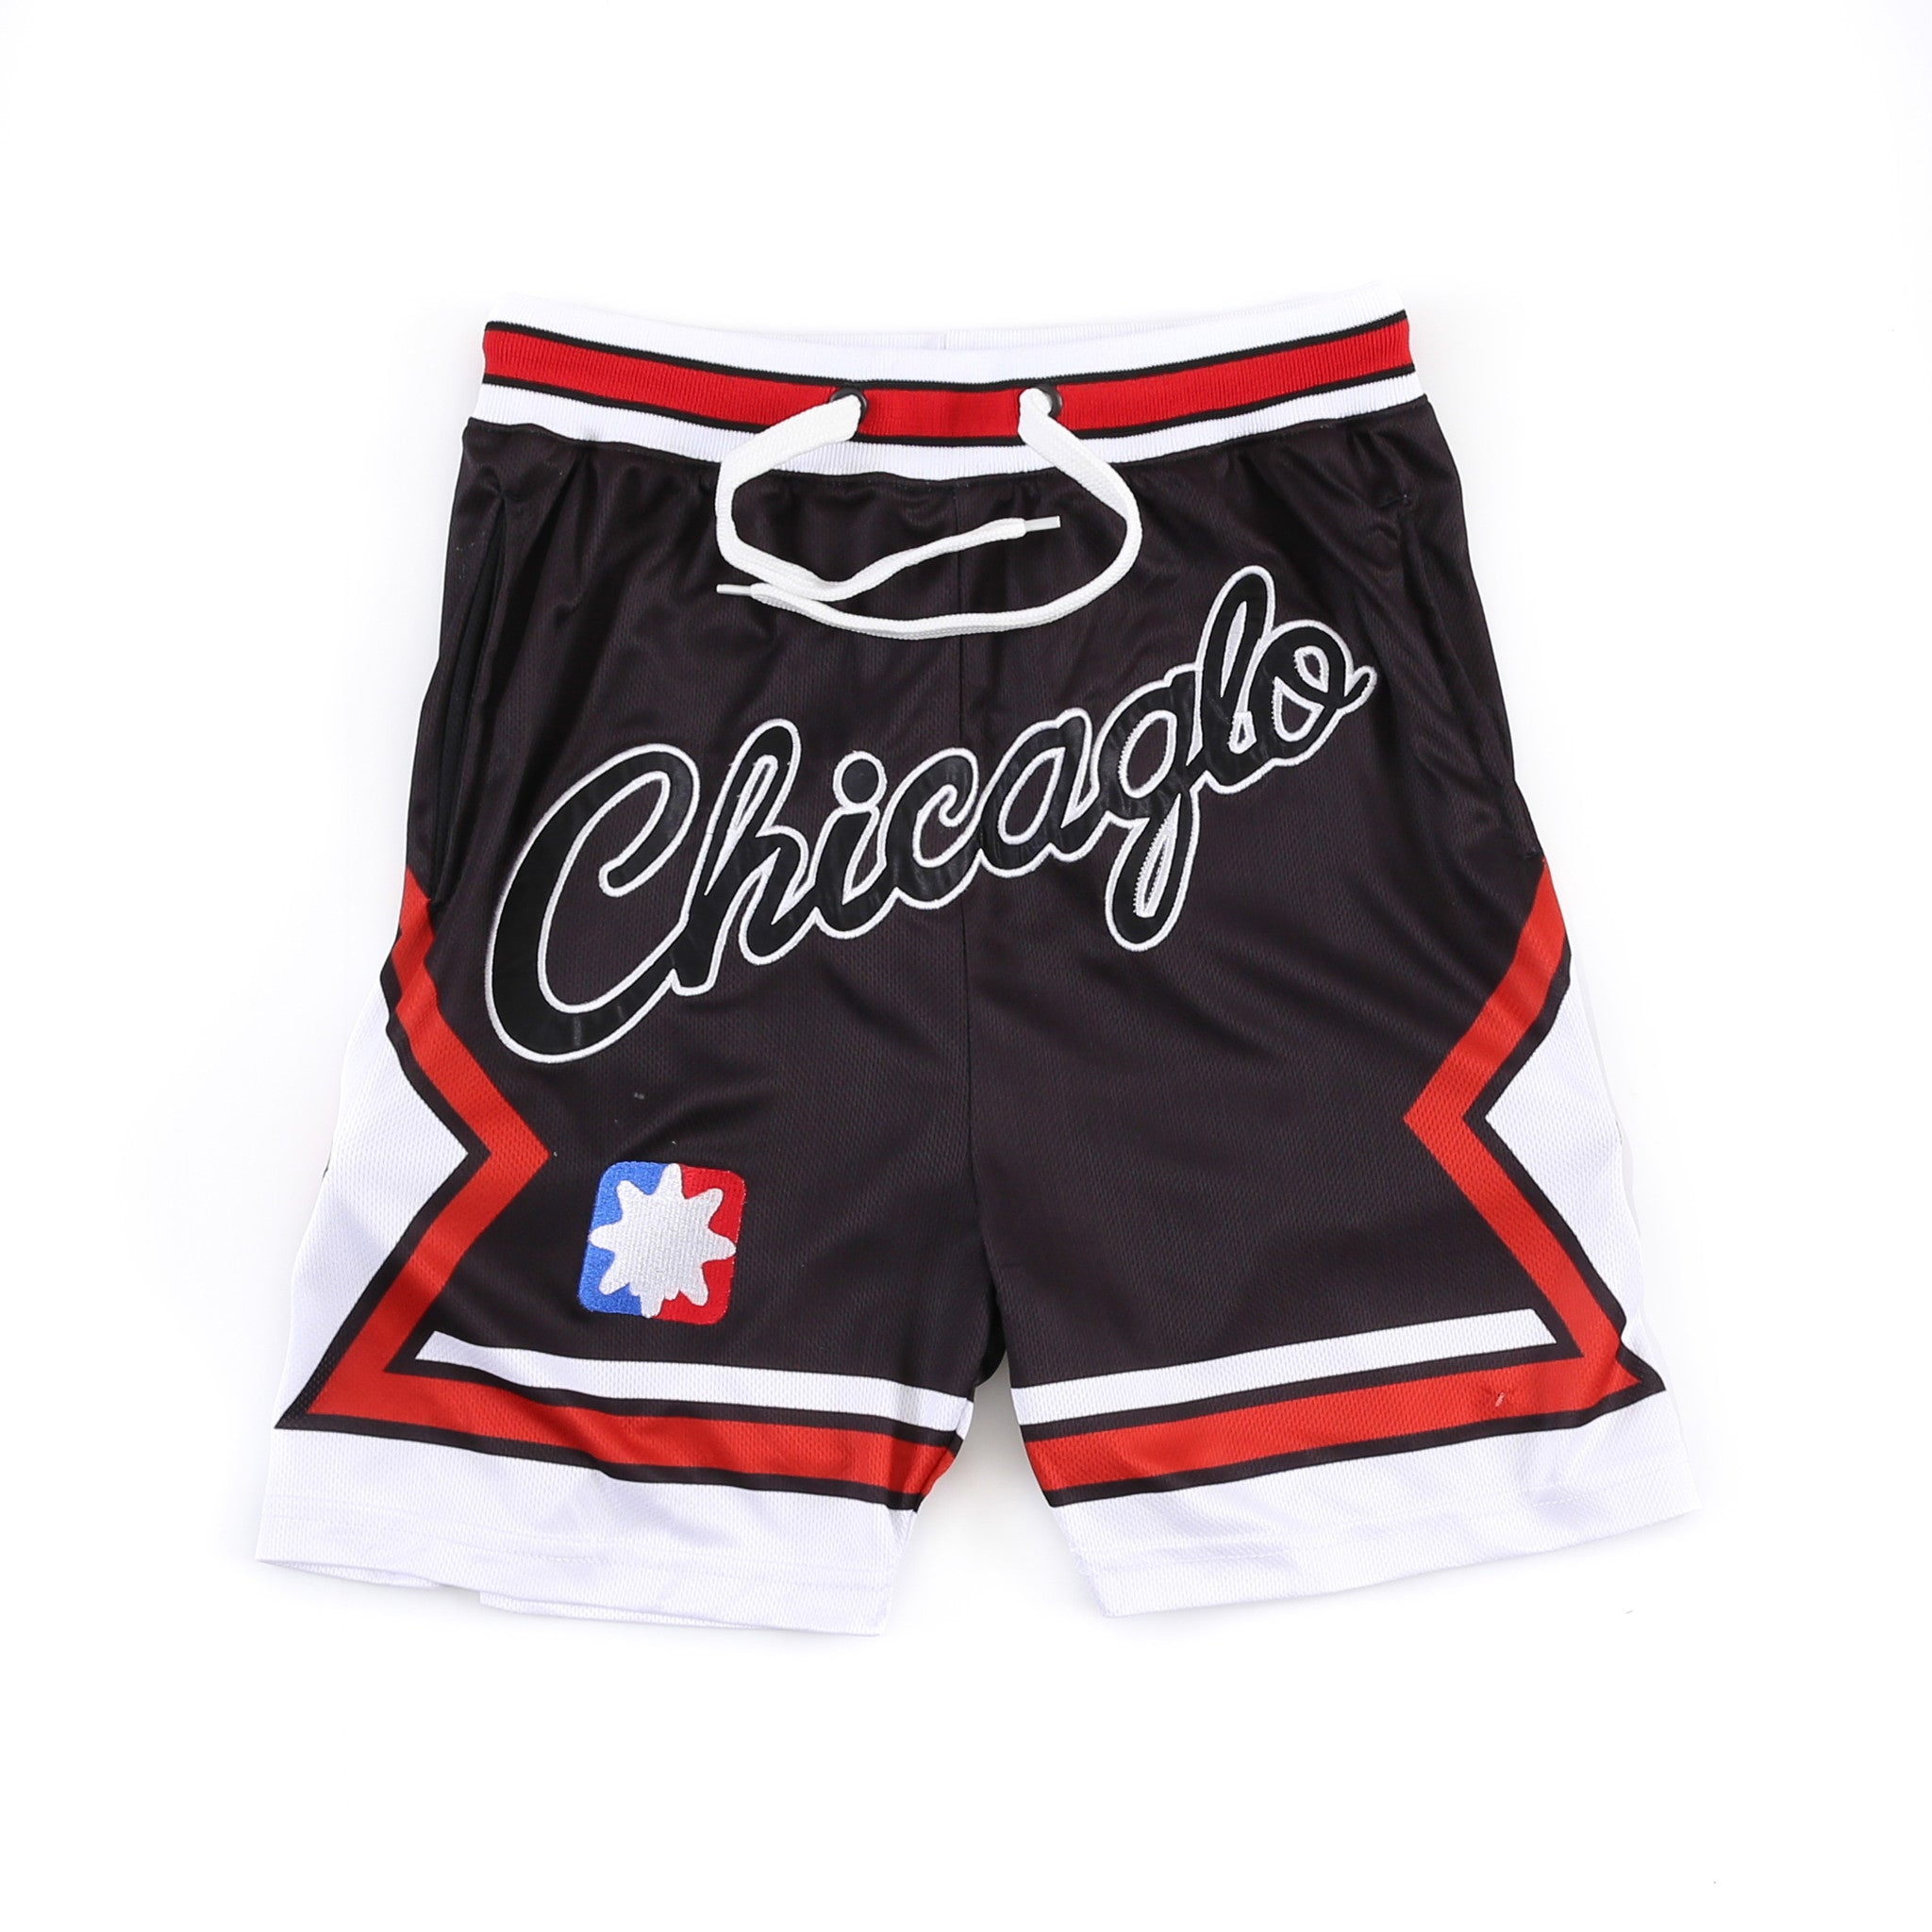 ChicaGlo Basketball Shorts (Black)